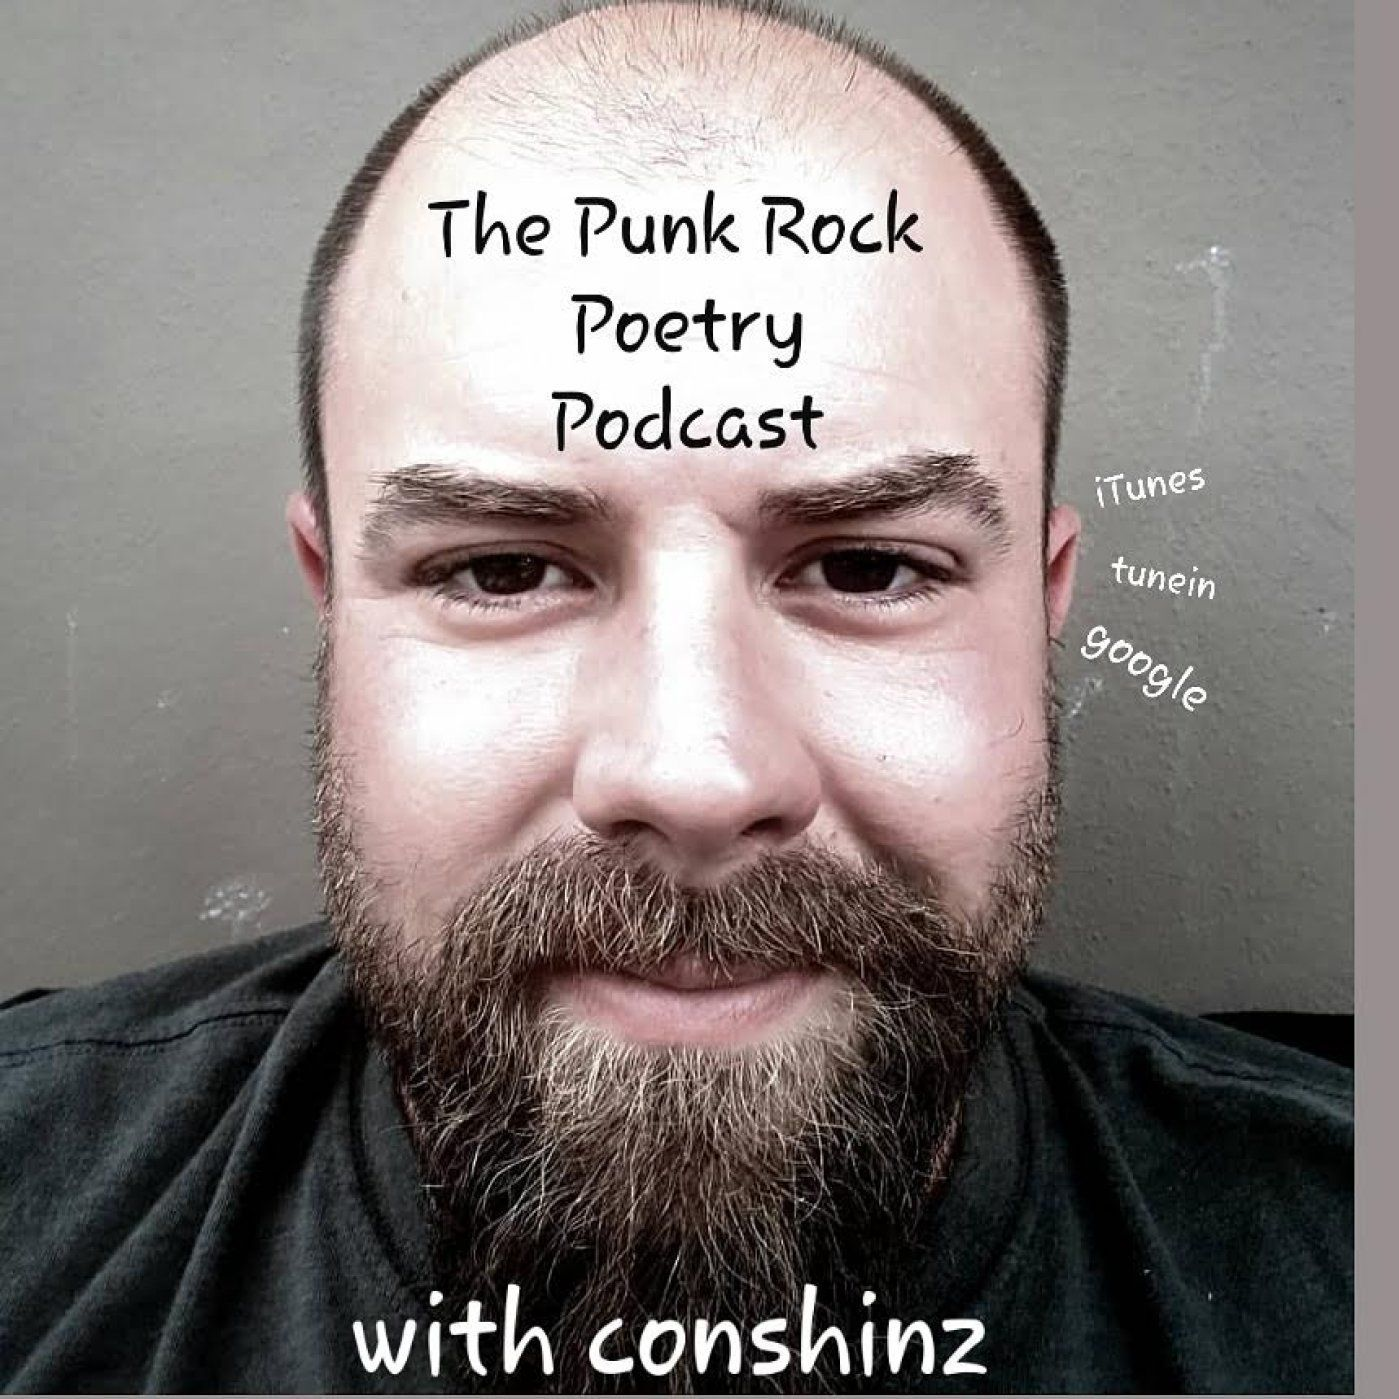 The Punk Rock Poetry Podcast - September 10th 2019